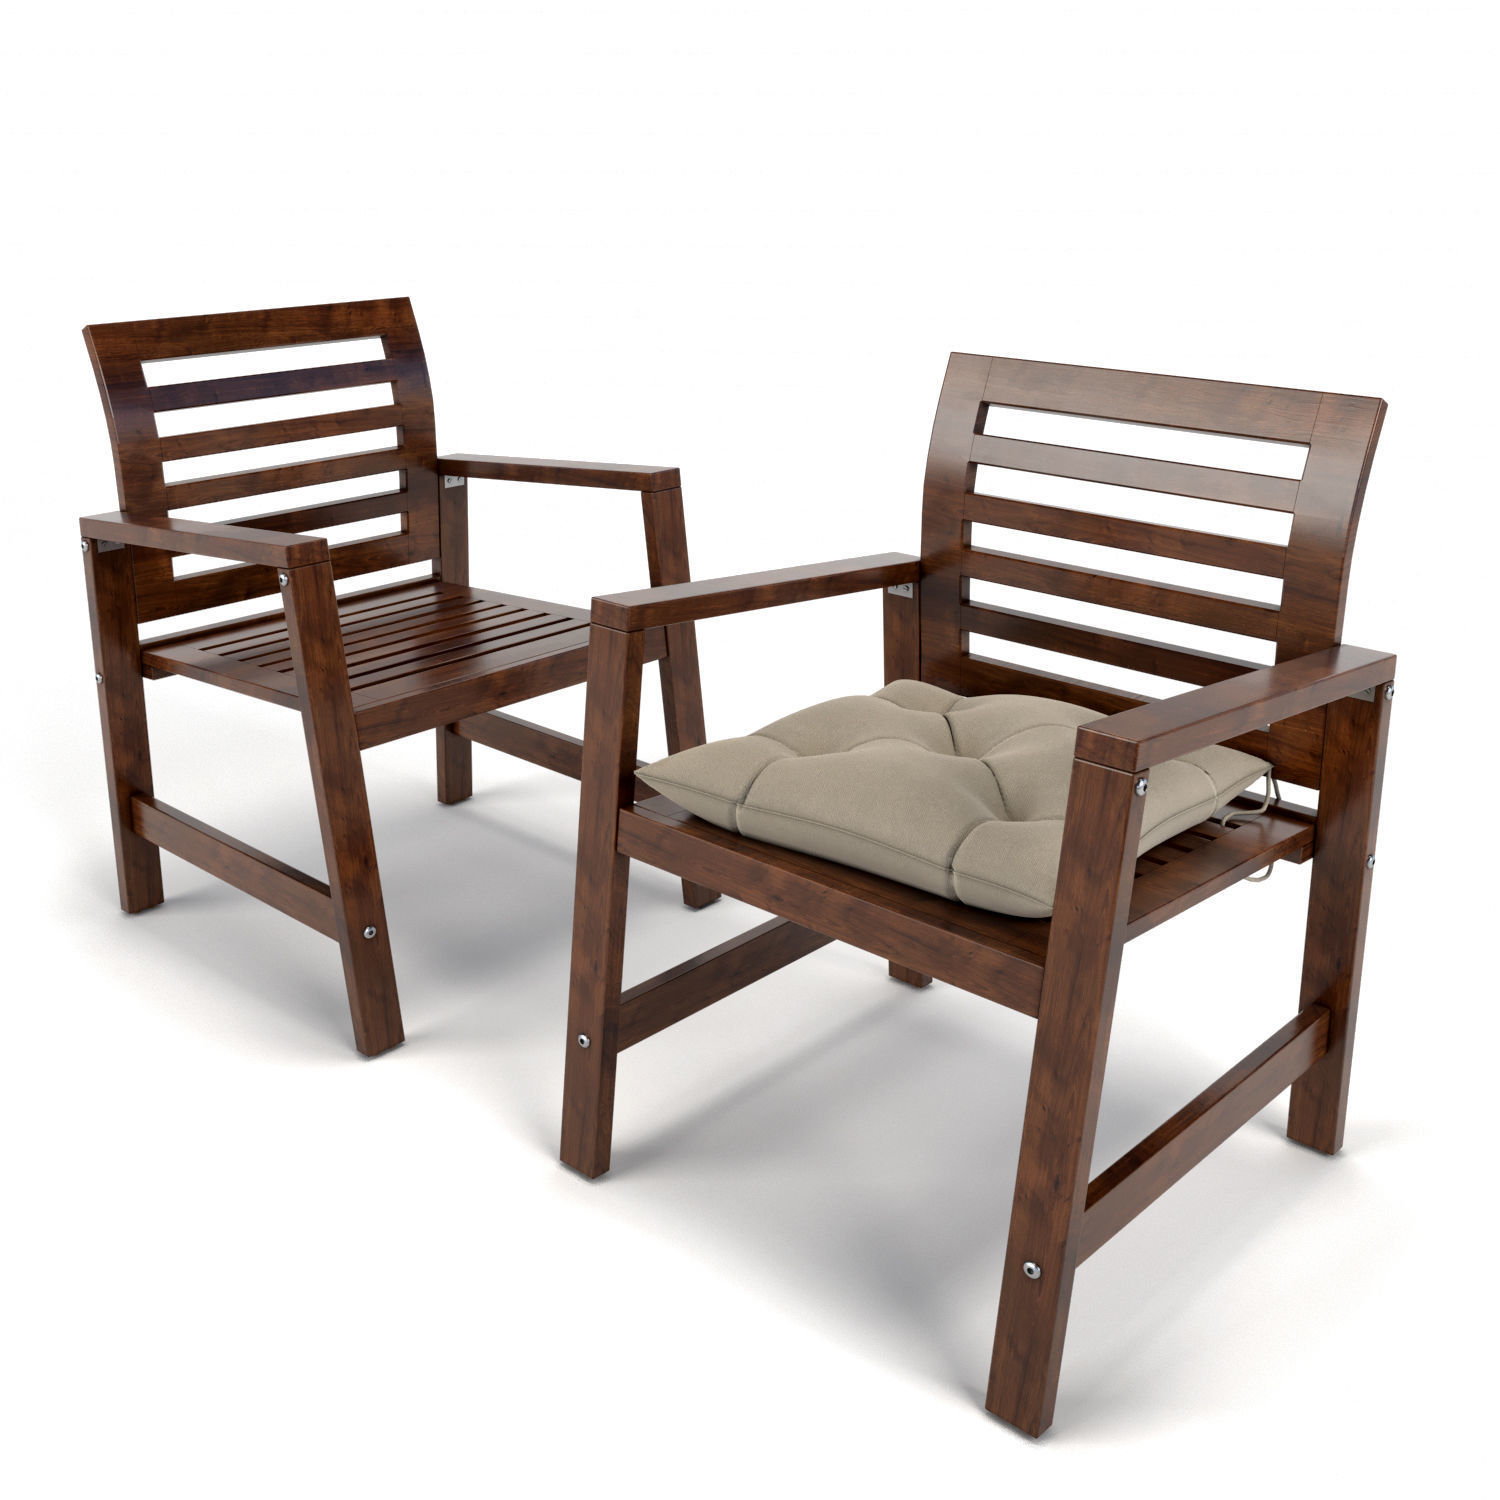 garden furniture applaro ikea 3d model max fbx 2 - Garden Furniture 3d Model